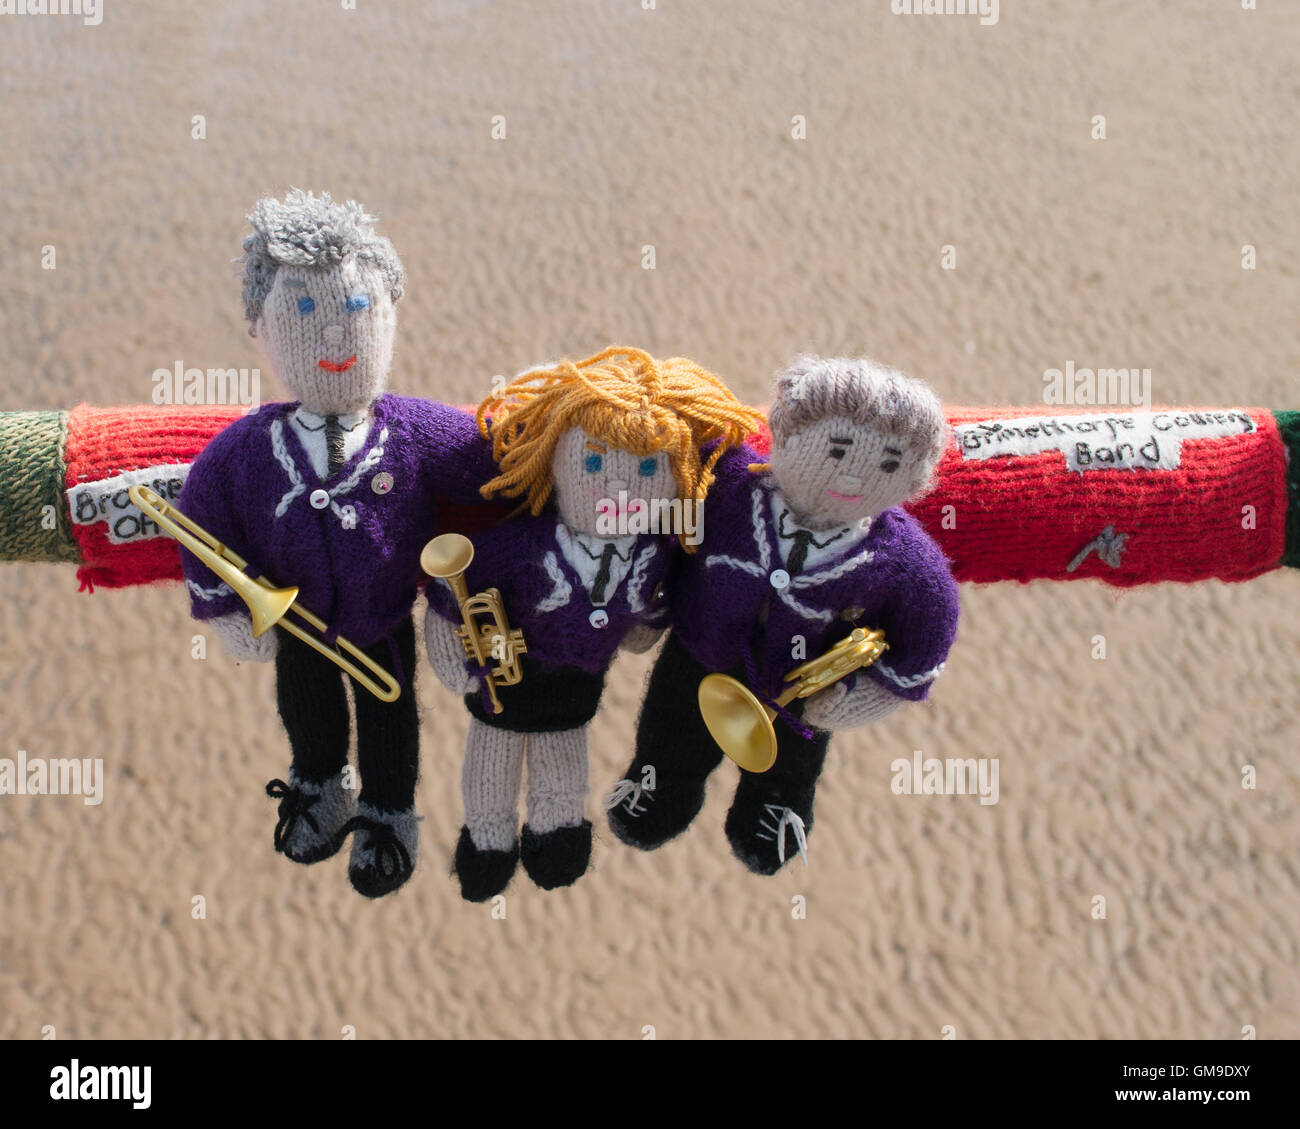 knitted-brass-band-players-with-text-gri